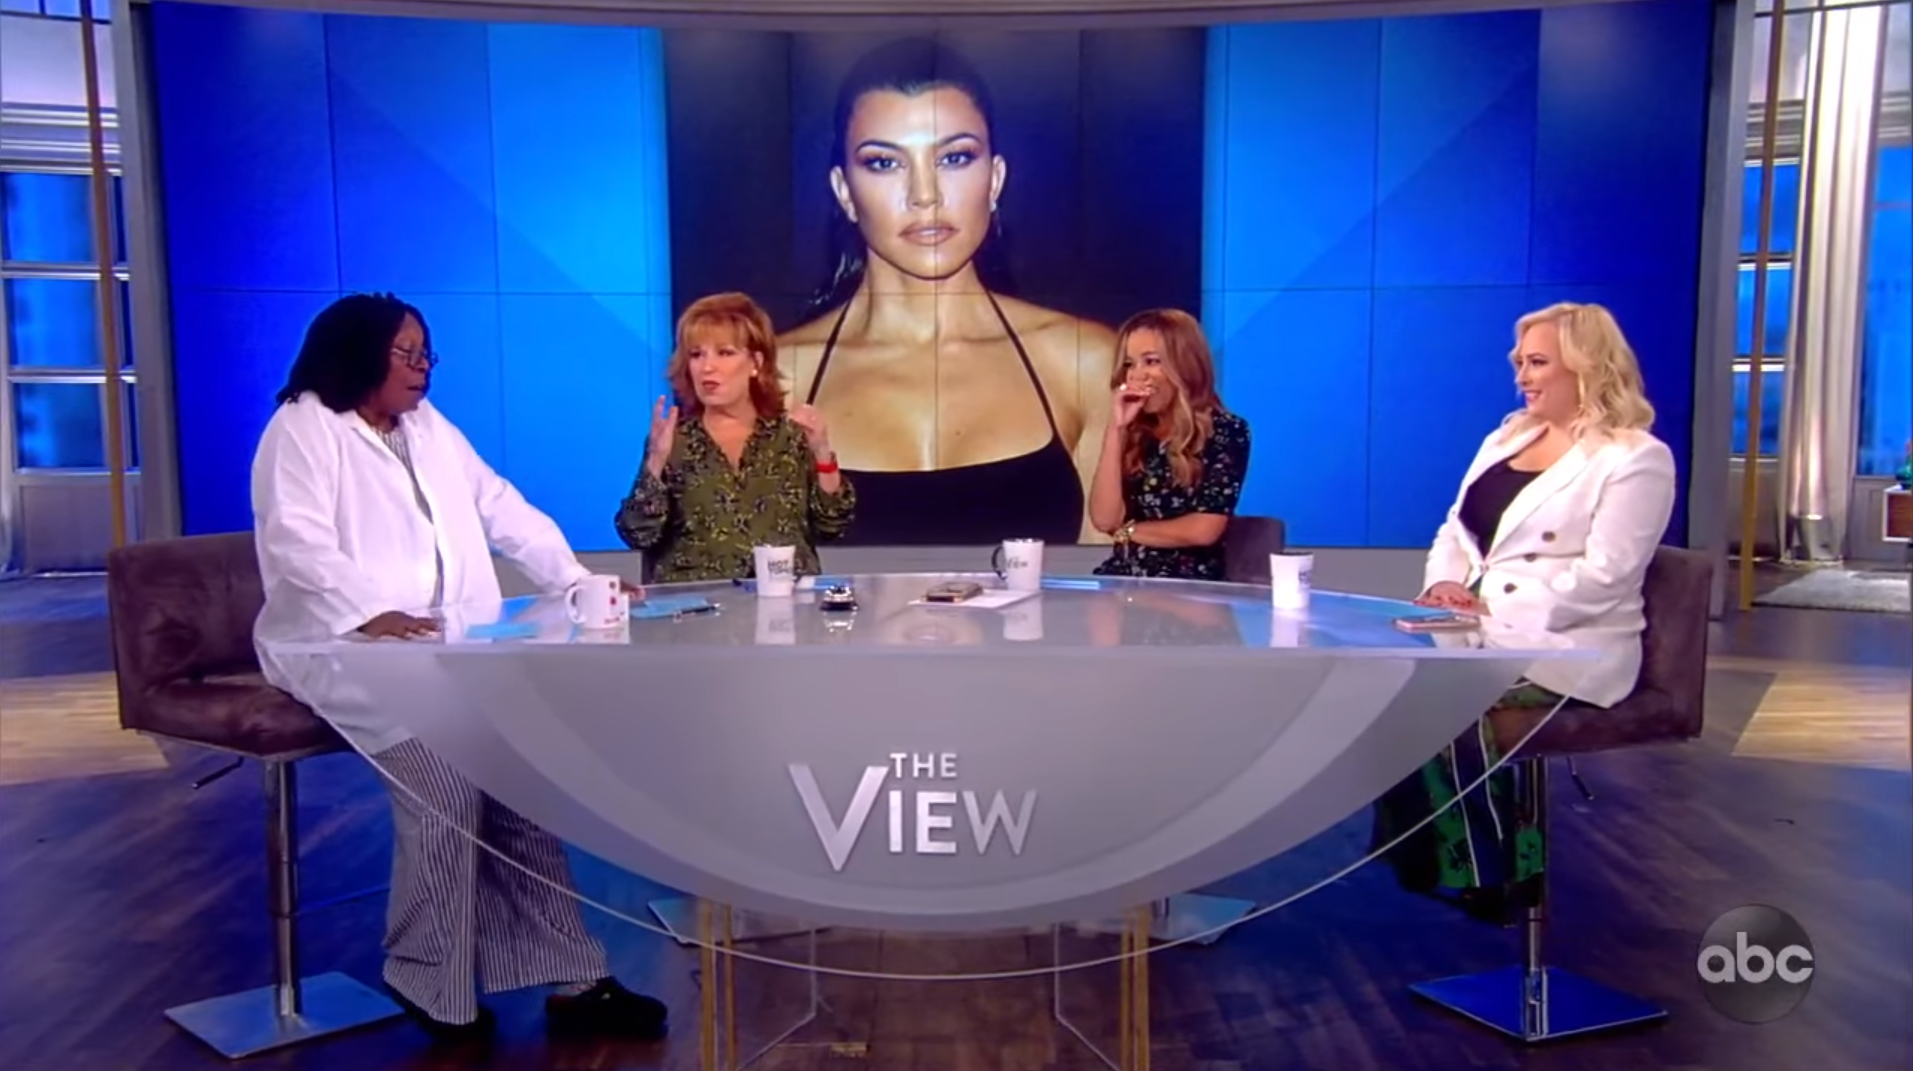 Westlake Legal Group the-view-khloe-kardashian Kourtney Kardashian blasted by 'The View' hosts after crying about turning 40 Jeremy Nifras fox-news/entertainment/the-view fox-news/entertainment/kardashians fox news fnc/entertainment fnc article 9c4b7ddc-edda-5a22-bbe8-73ee22aa0a5d